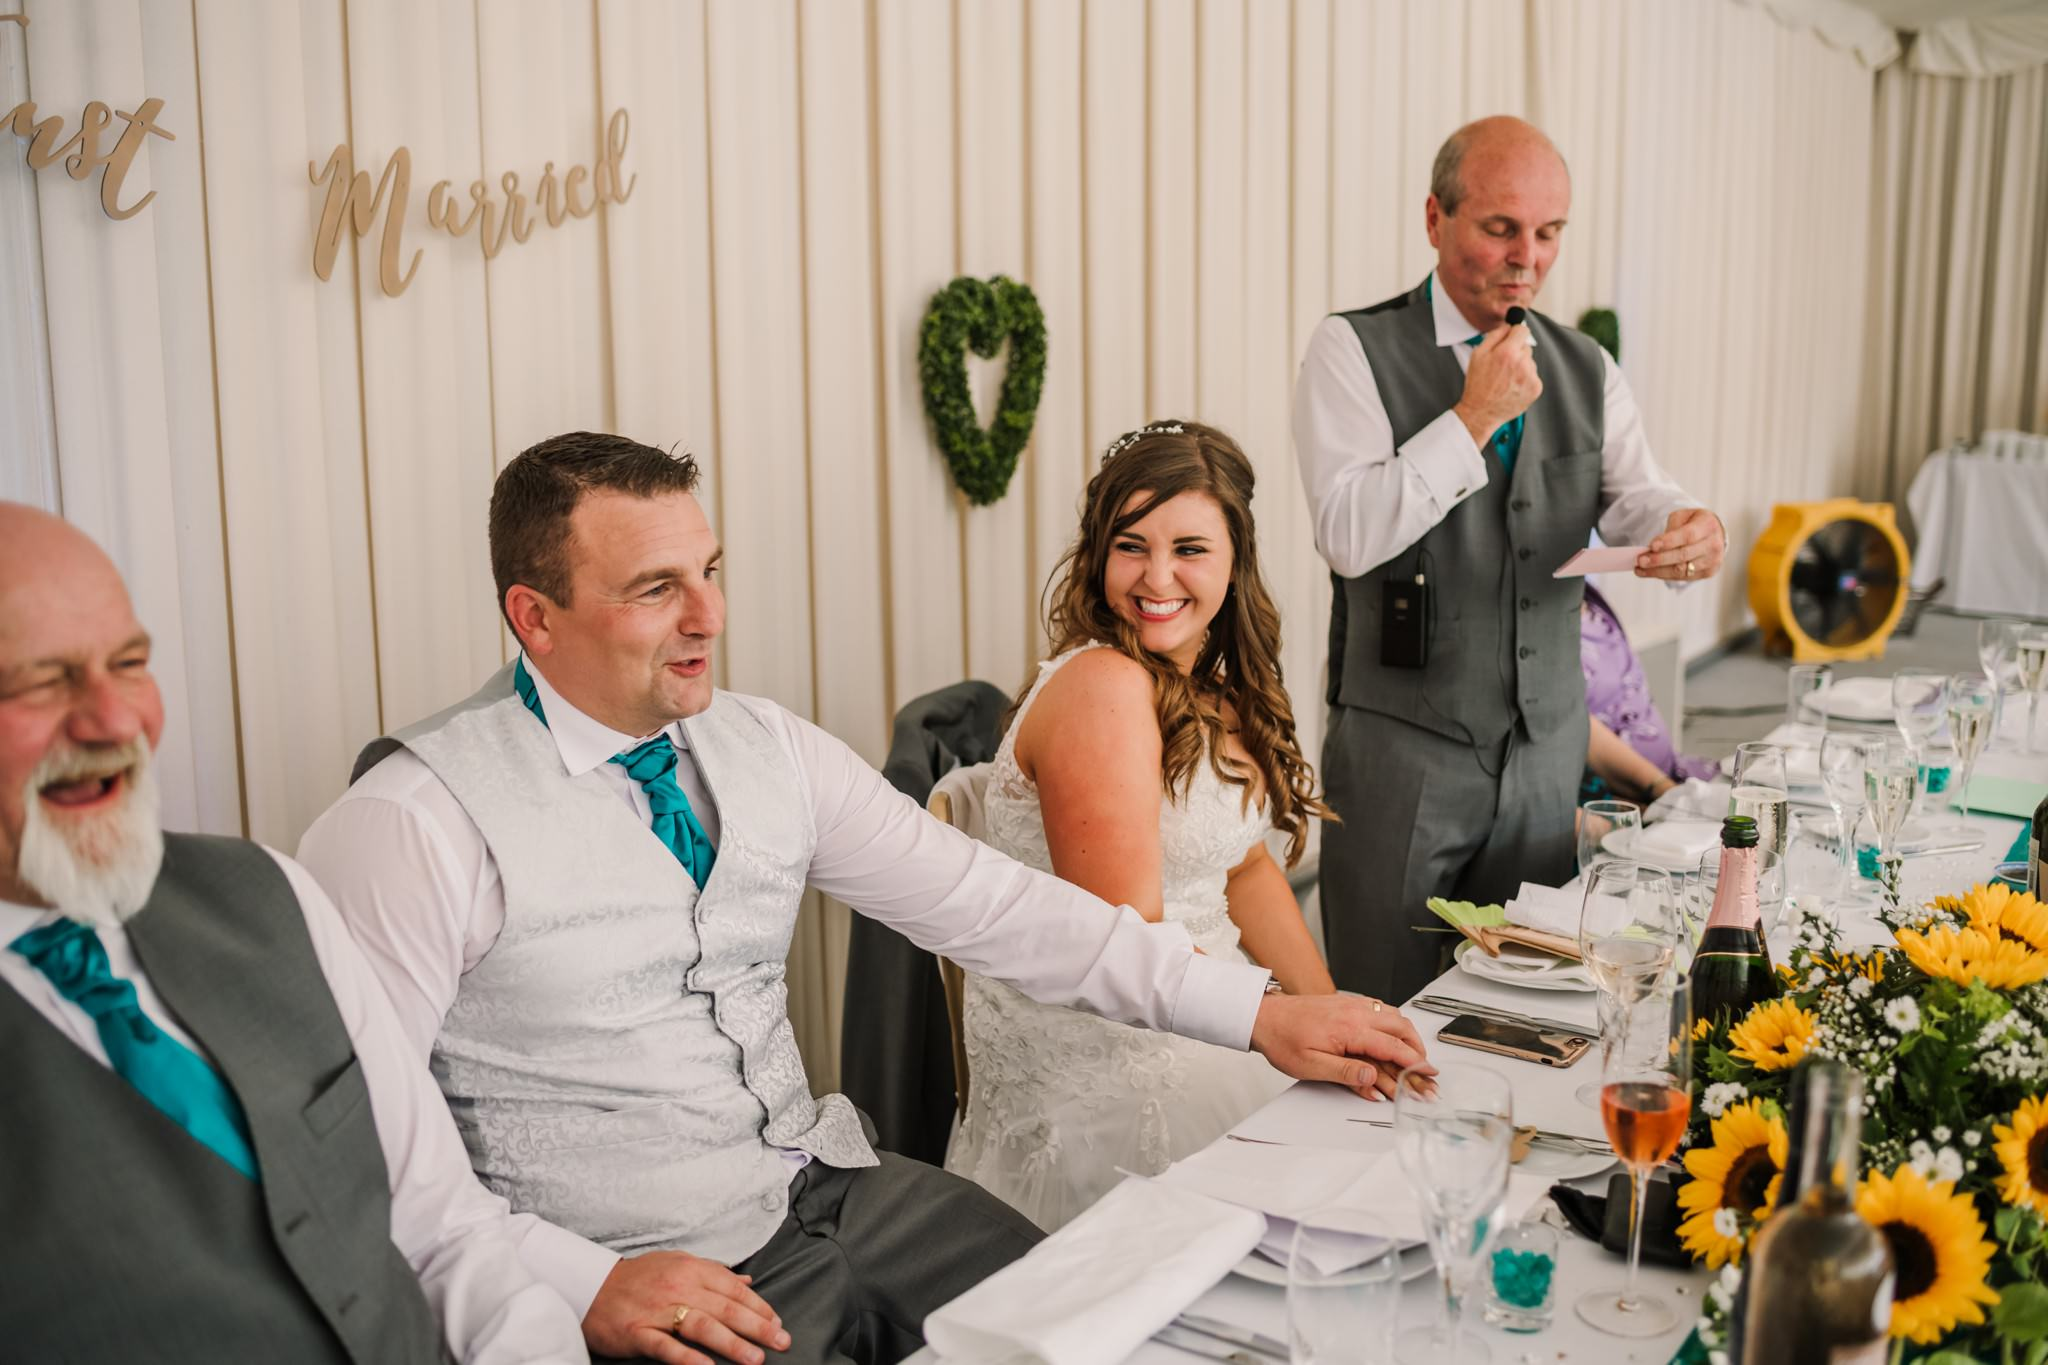 Fun wedding photography at funny speeches